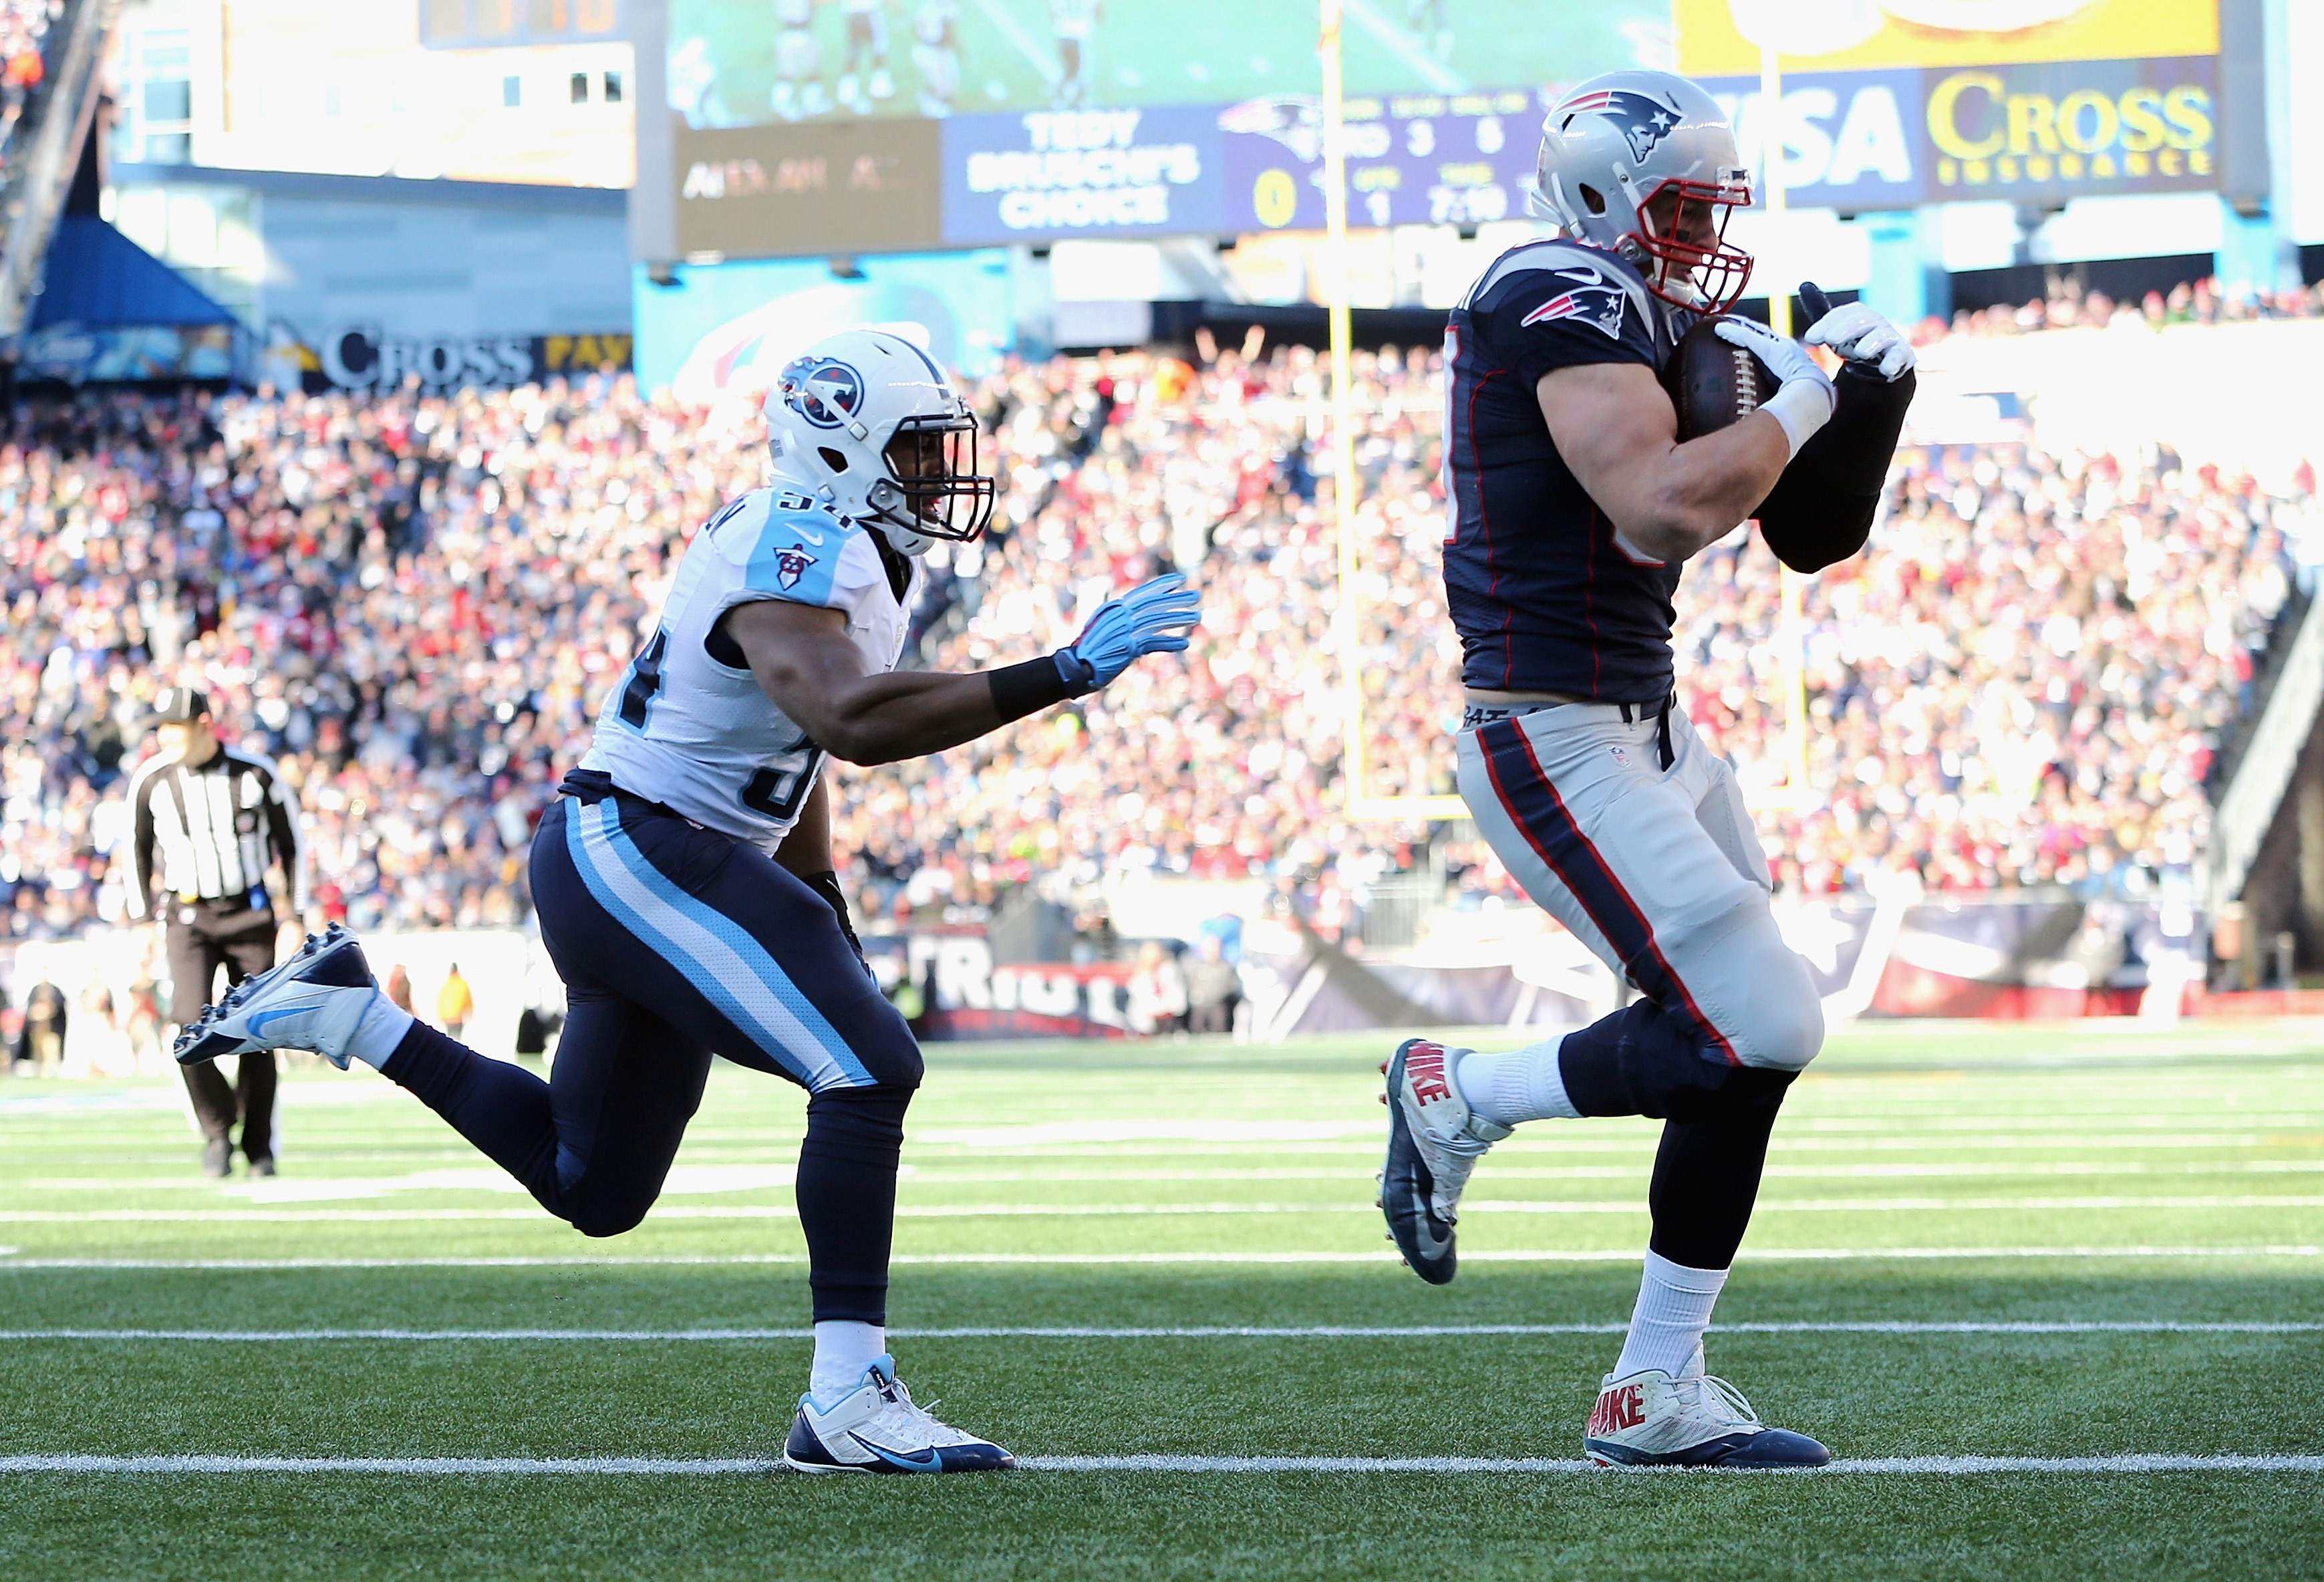 New England's Rob Gronkowski scores a touchdown during the first quarter against the Titans. The Patriots clinched a first-round playoff bye.